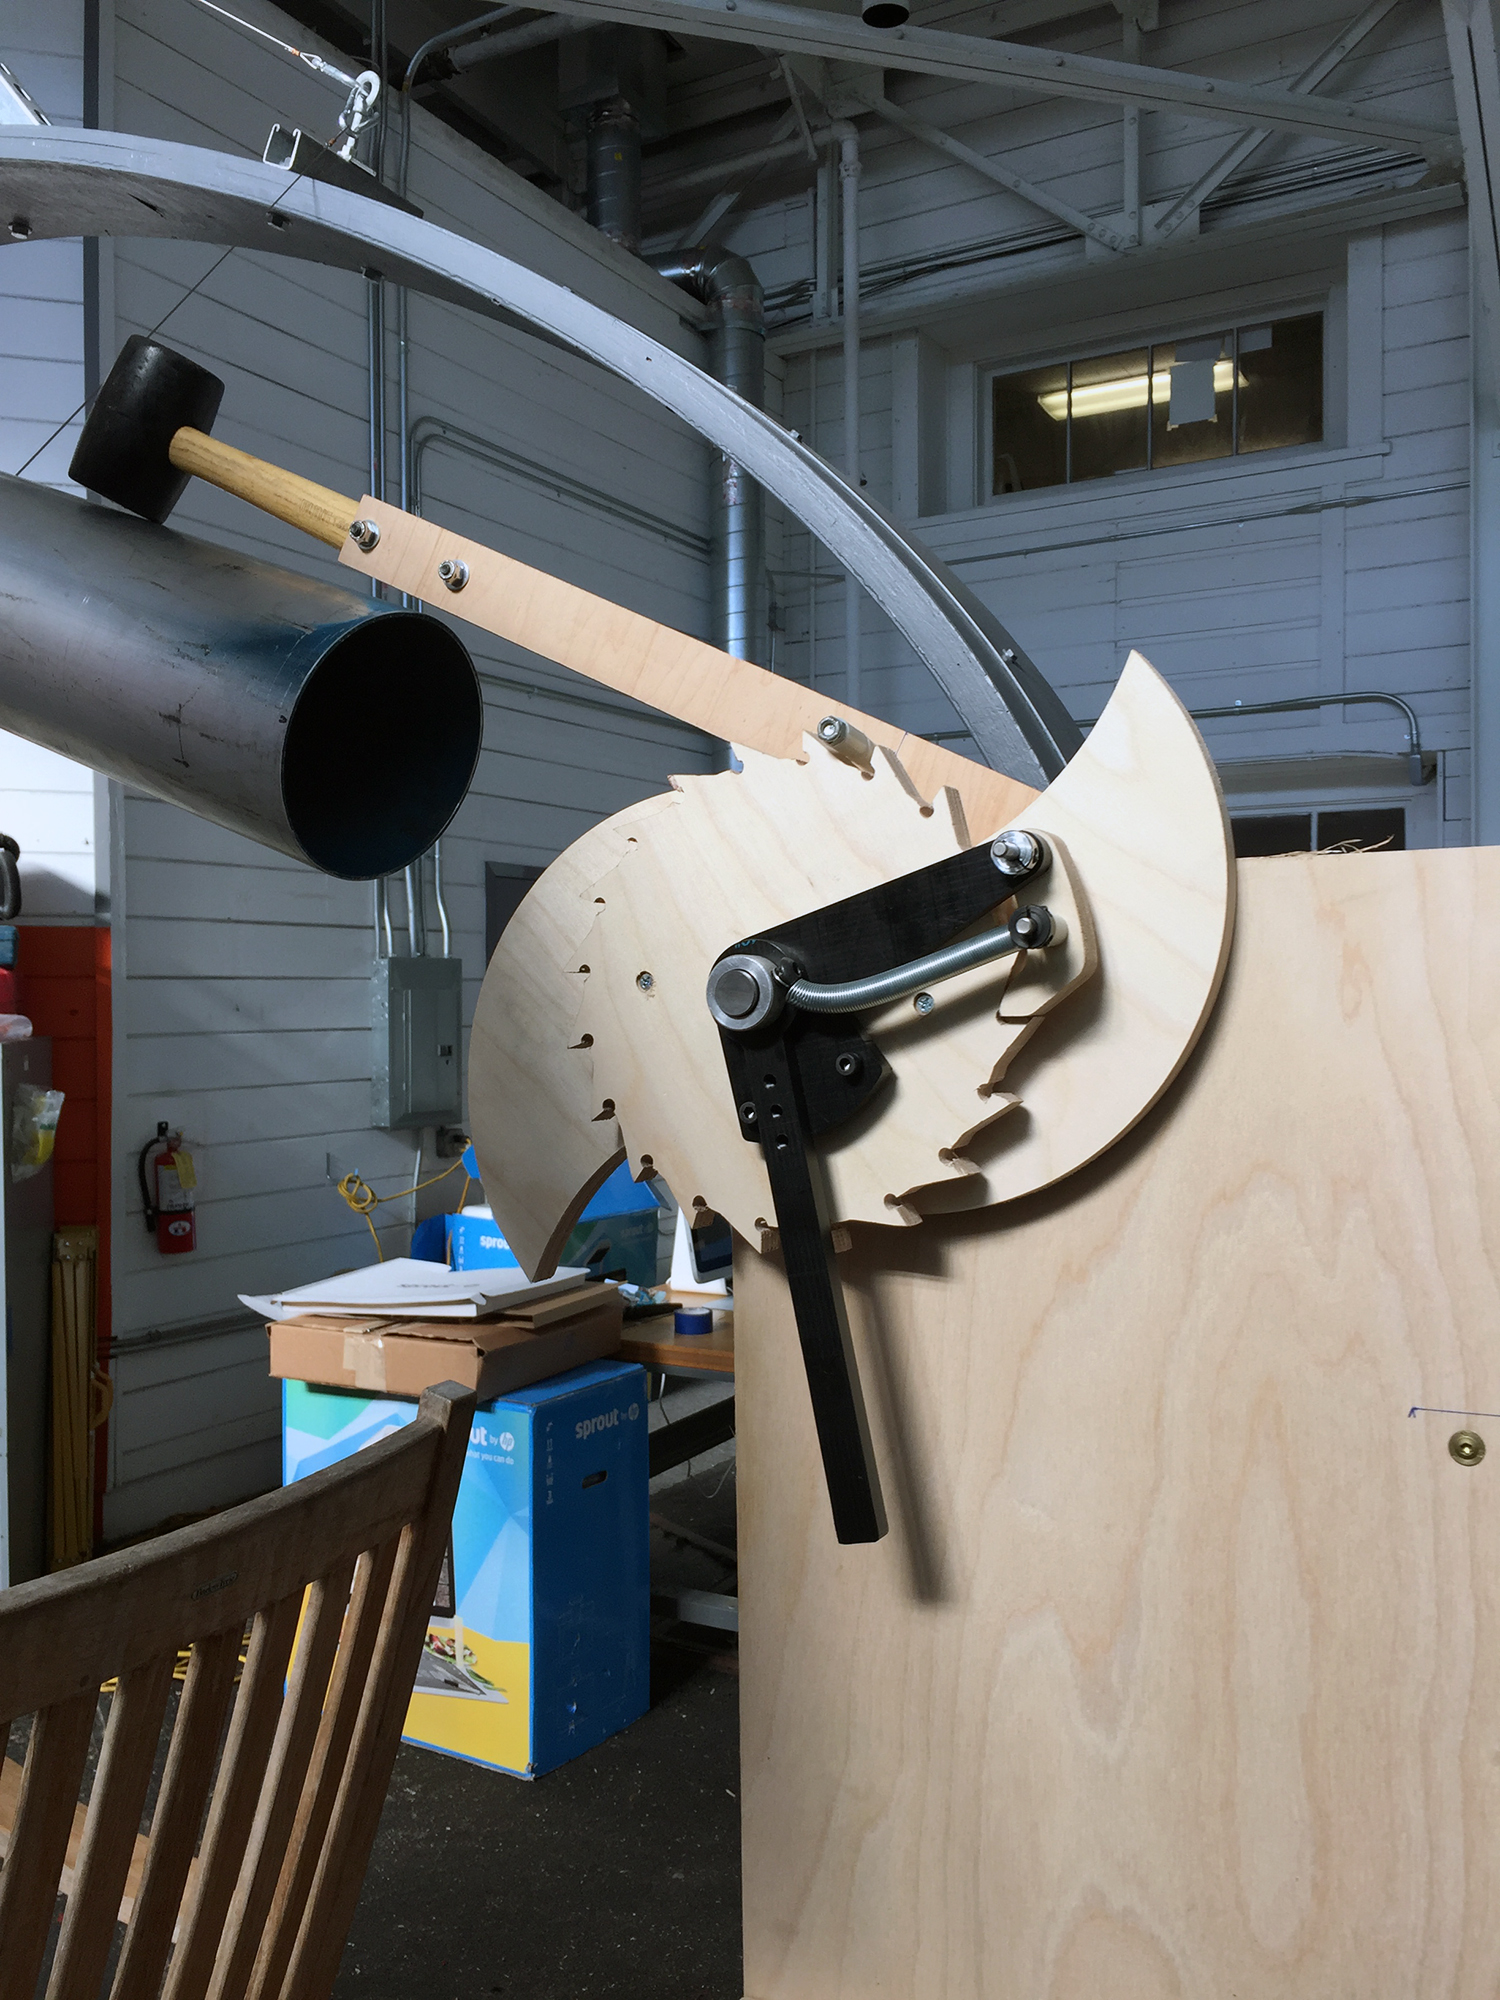 An early prototype of the striking mechanism, assembled by Adam Esposito